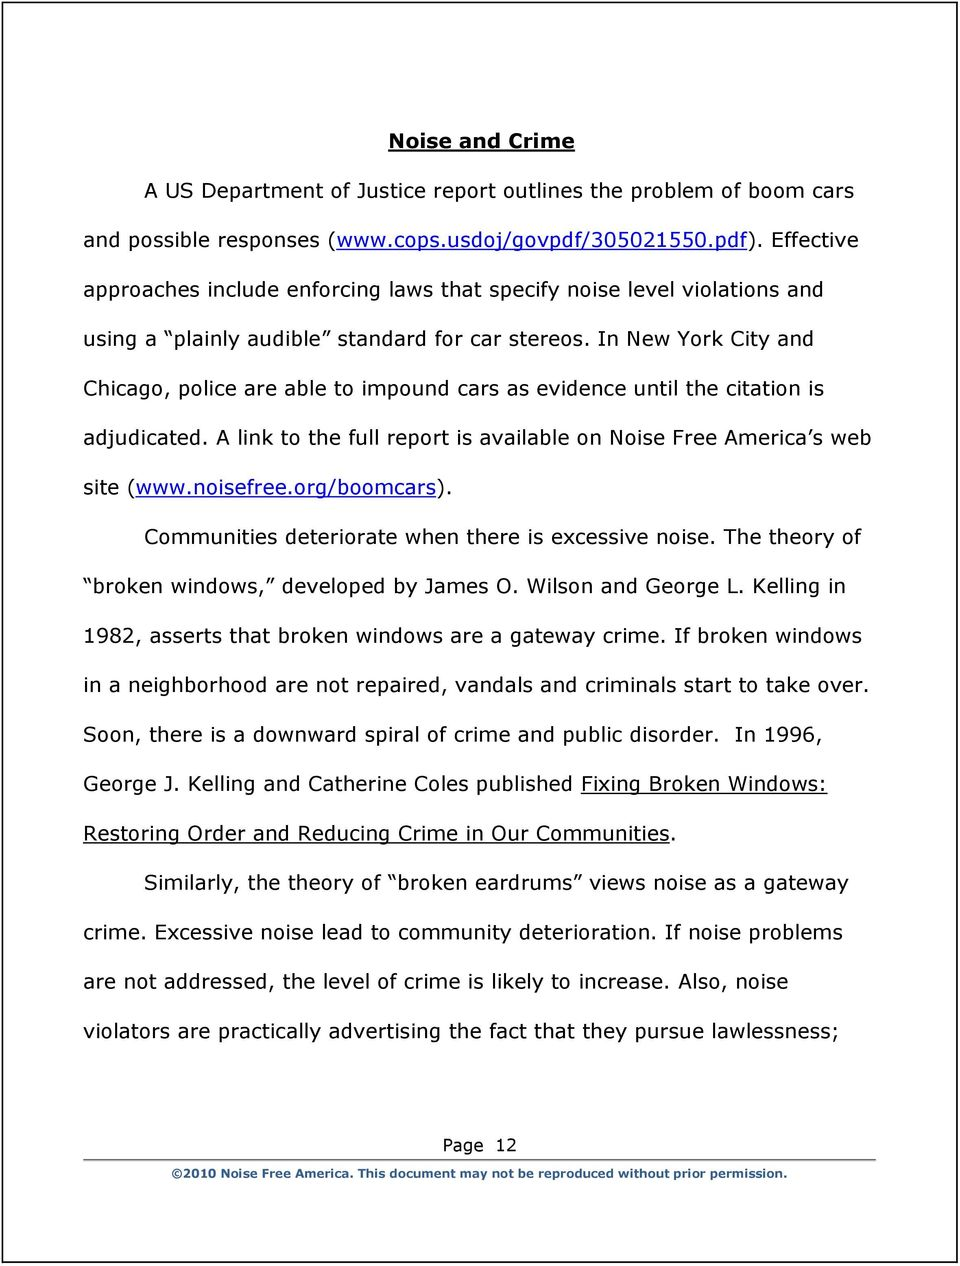 In New York City and Chicago, police are able to impound cars as evidence until the citation is adjudicated. A link to the full report is available on Noise Free America s web site (www.noisefree.